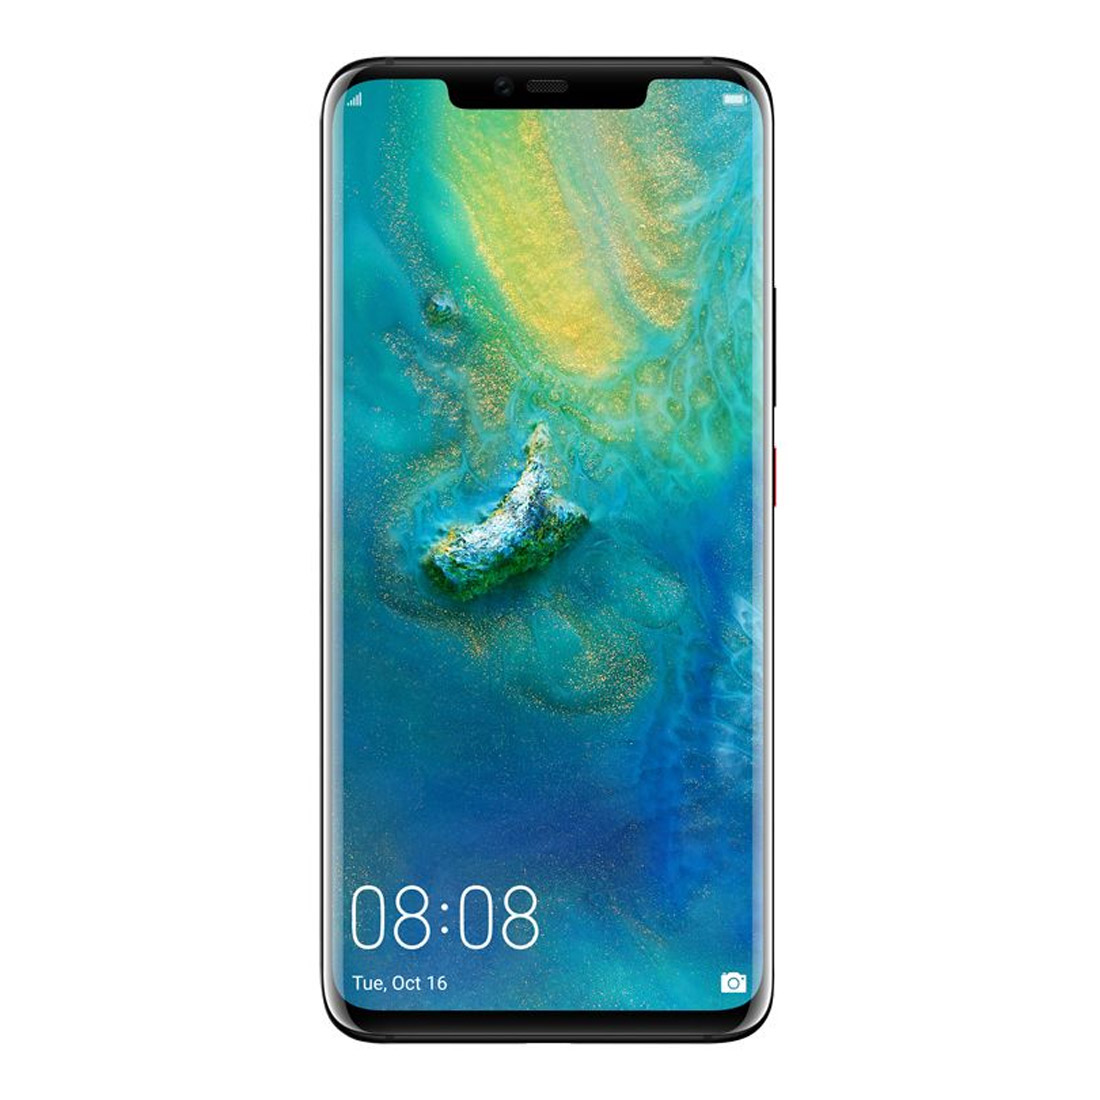 [Good Condition - Pre Owned] Huawei Mate 20 Pro (Single Sim, Opt) - Midnight Blue